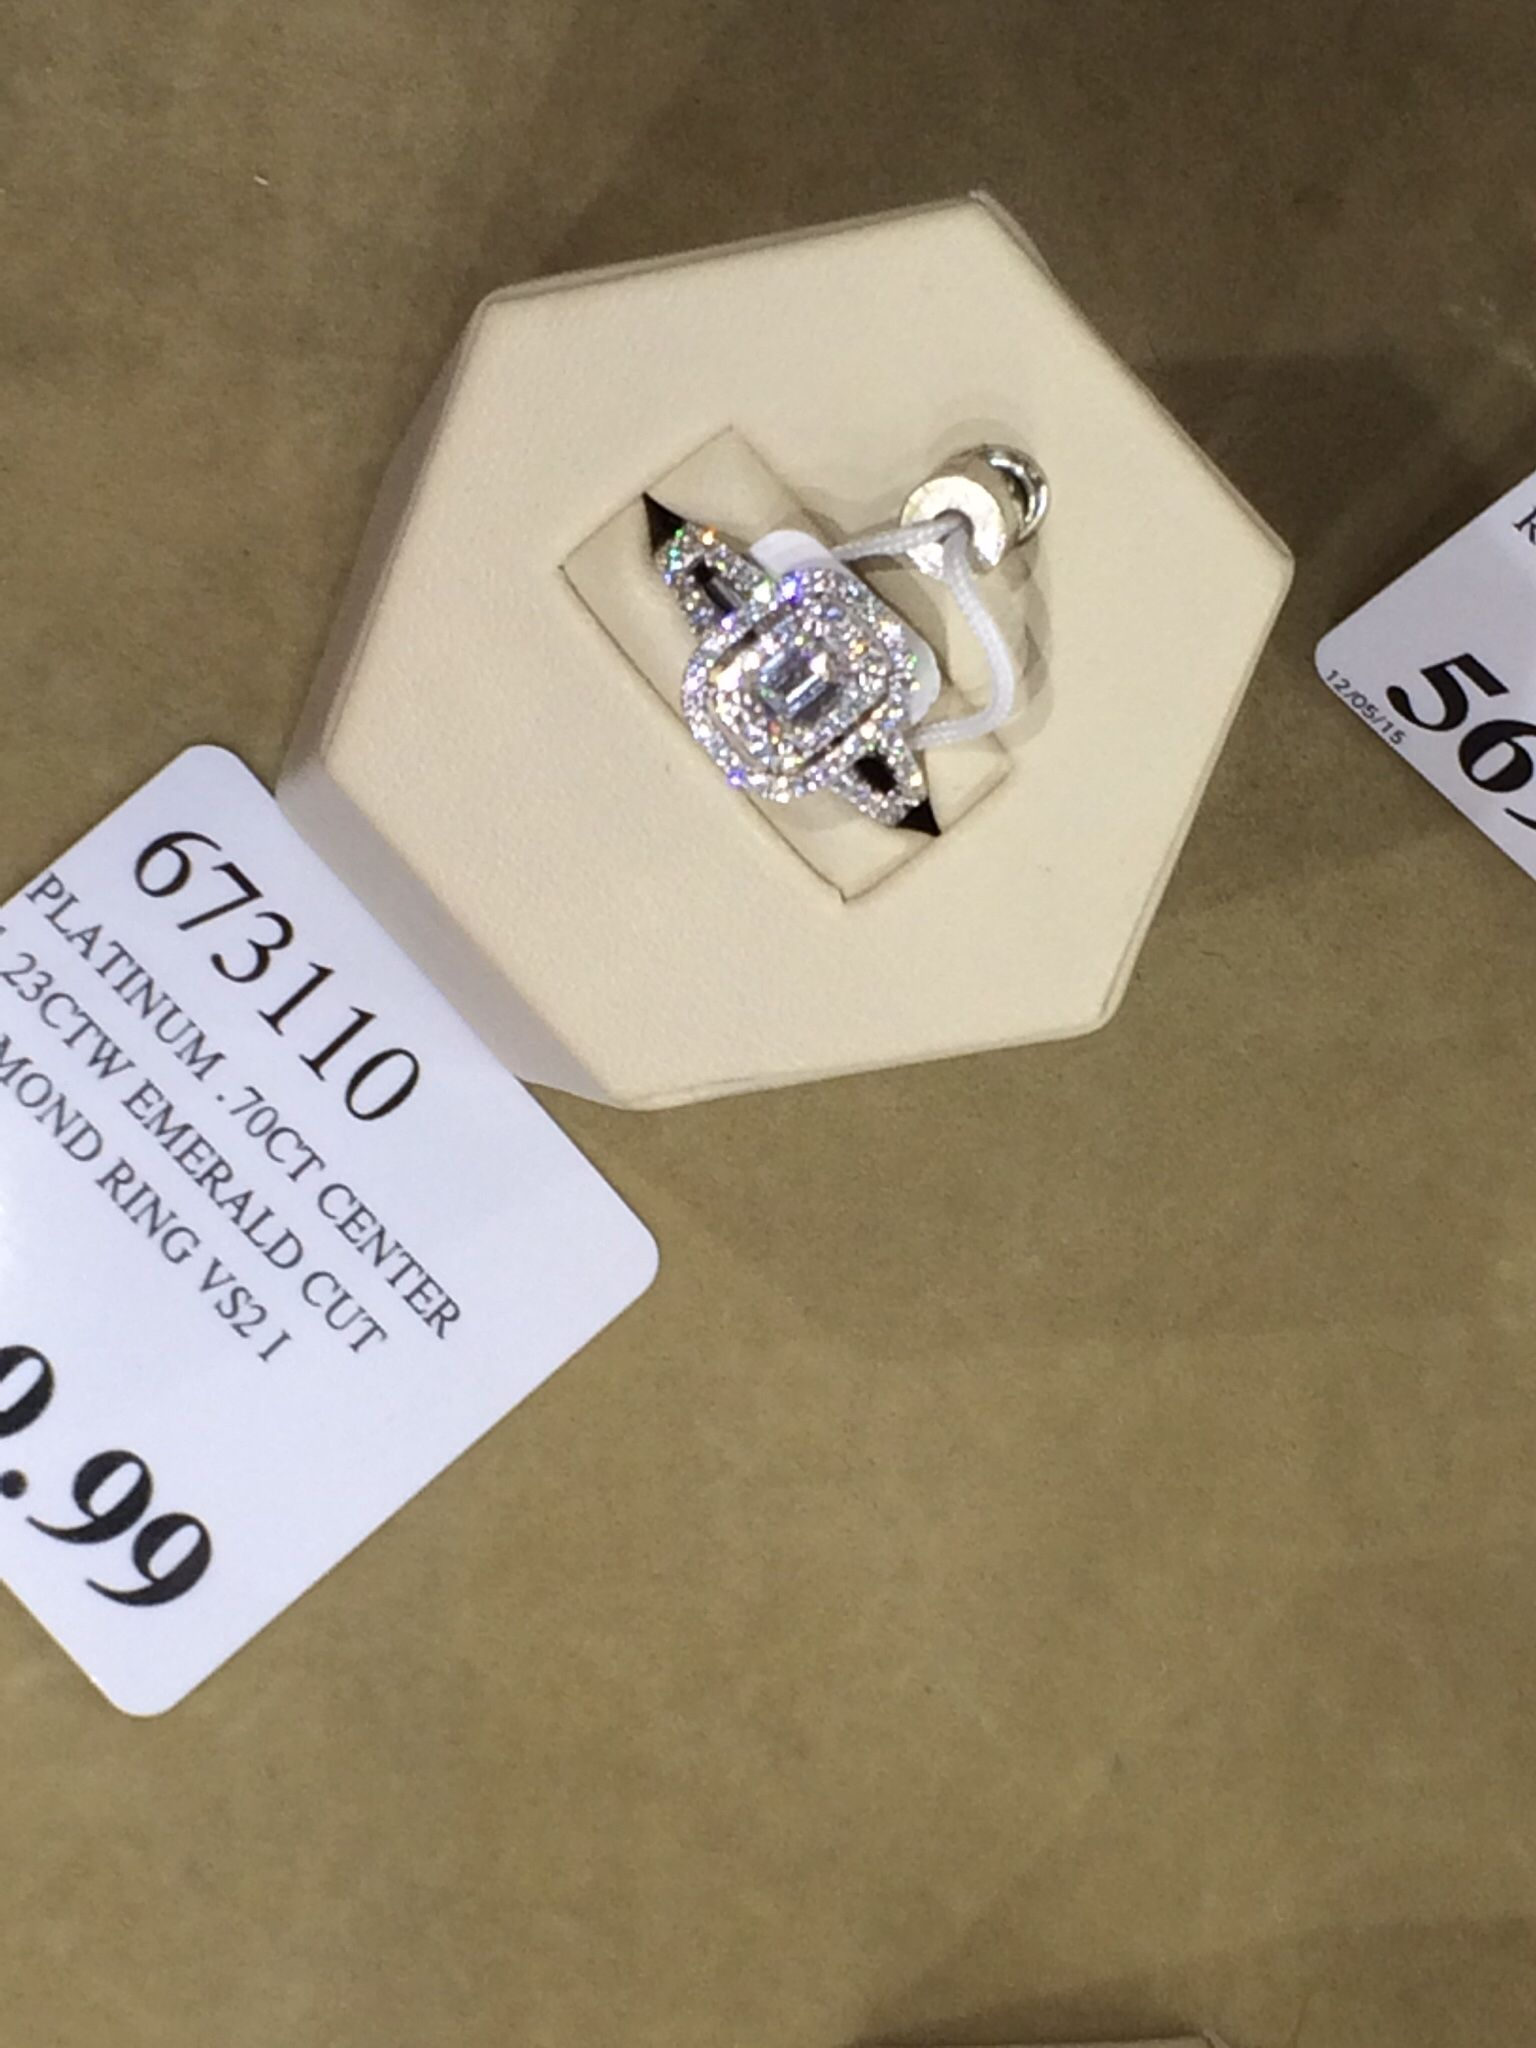 costco 399 - Costco Wedding Ring